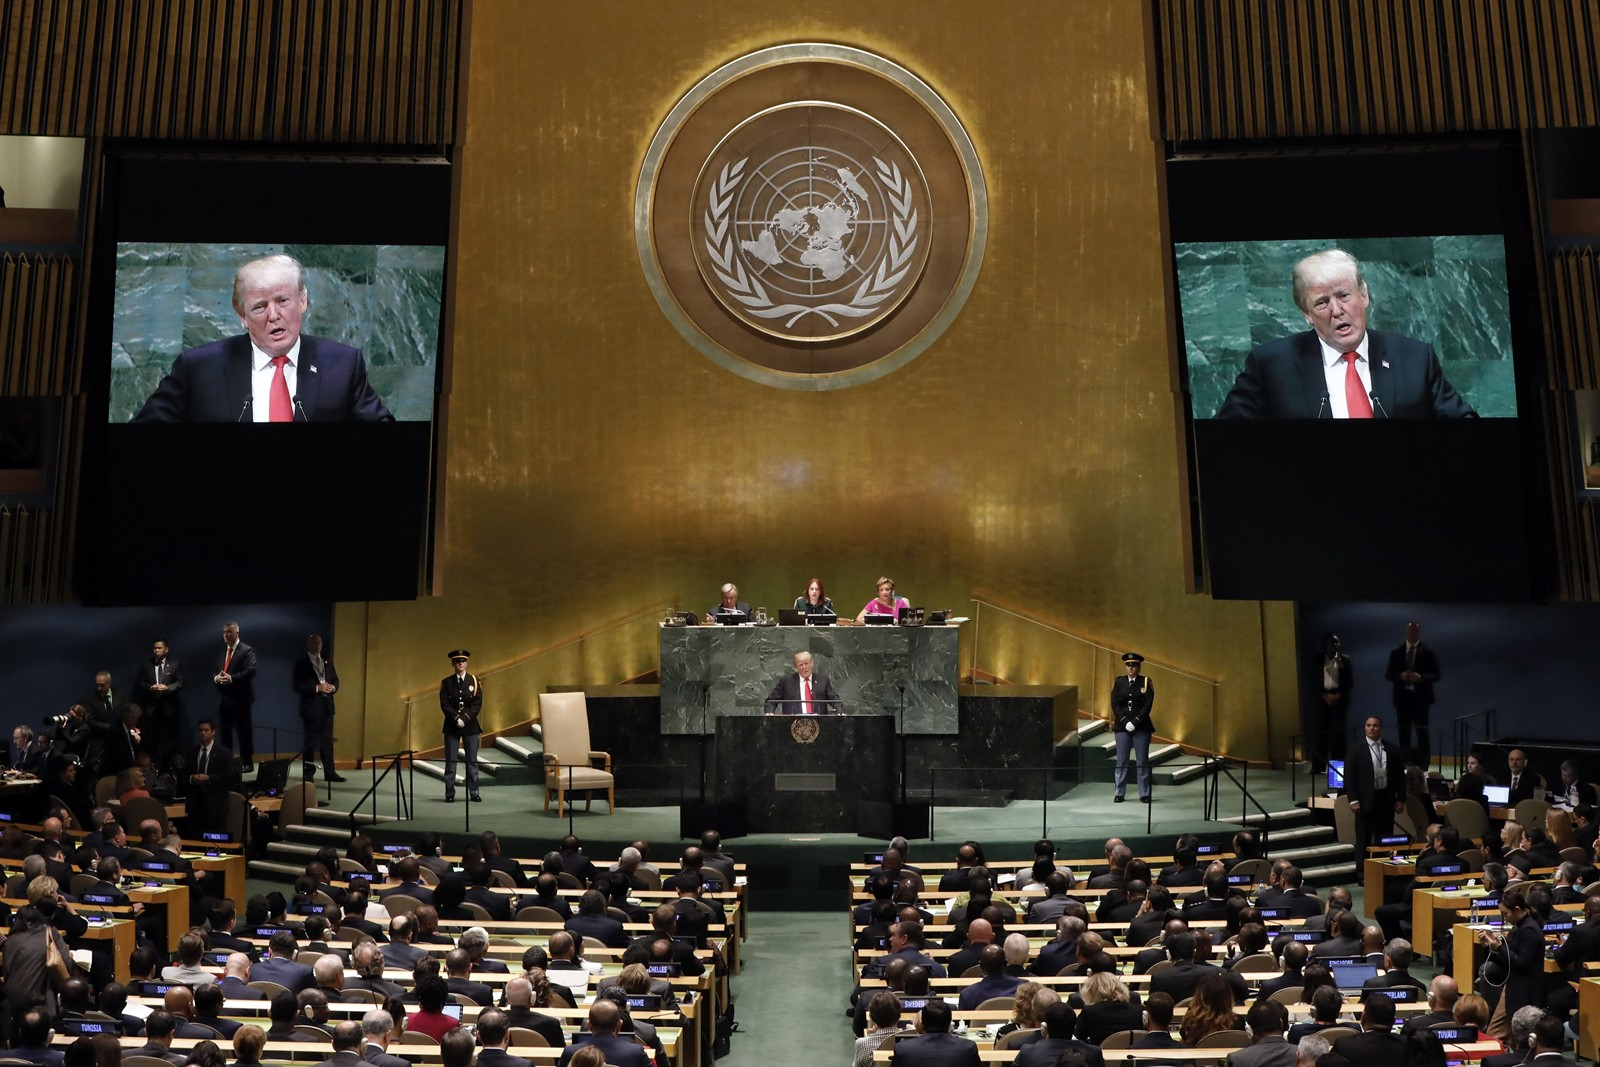 President Trump, speaking on Tuesday at the U.N. General Assembly, gained little global support for his hard-line policy proposals. — Photograph: Richard Drew/Associated Press.